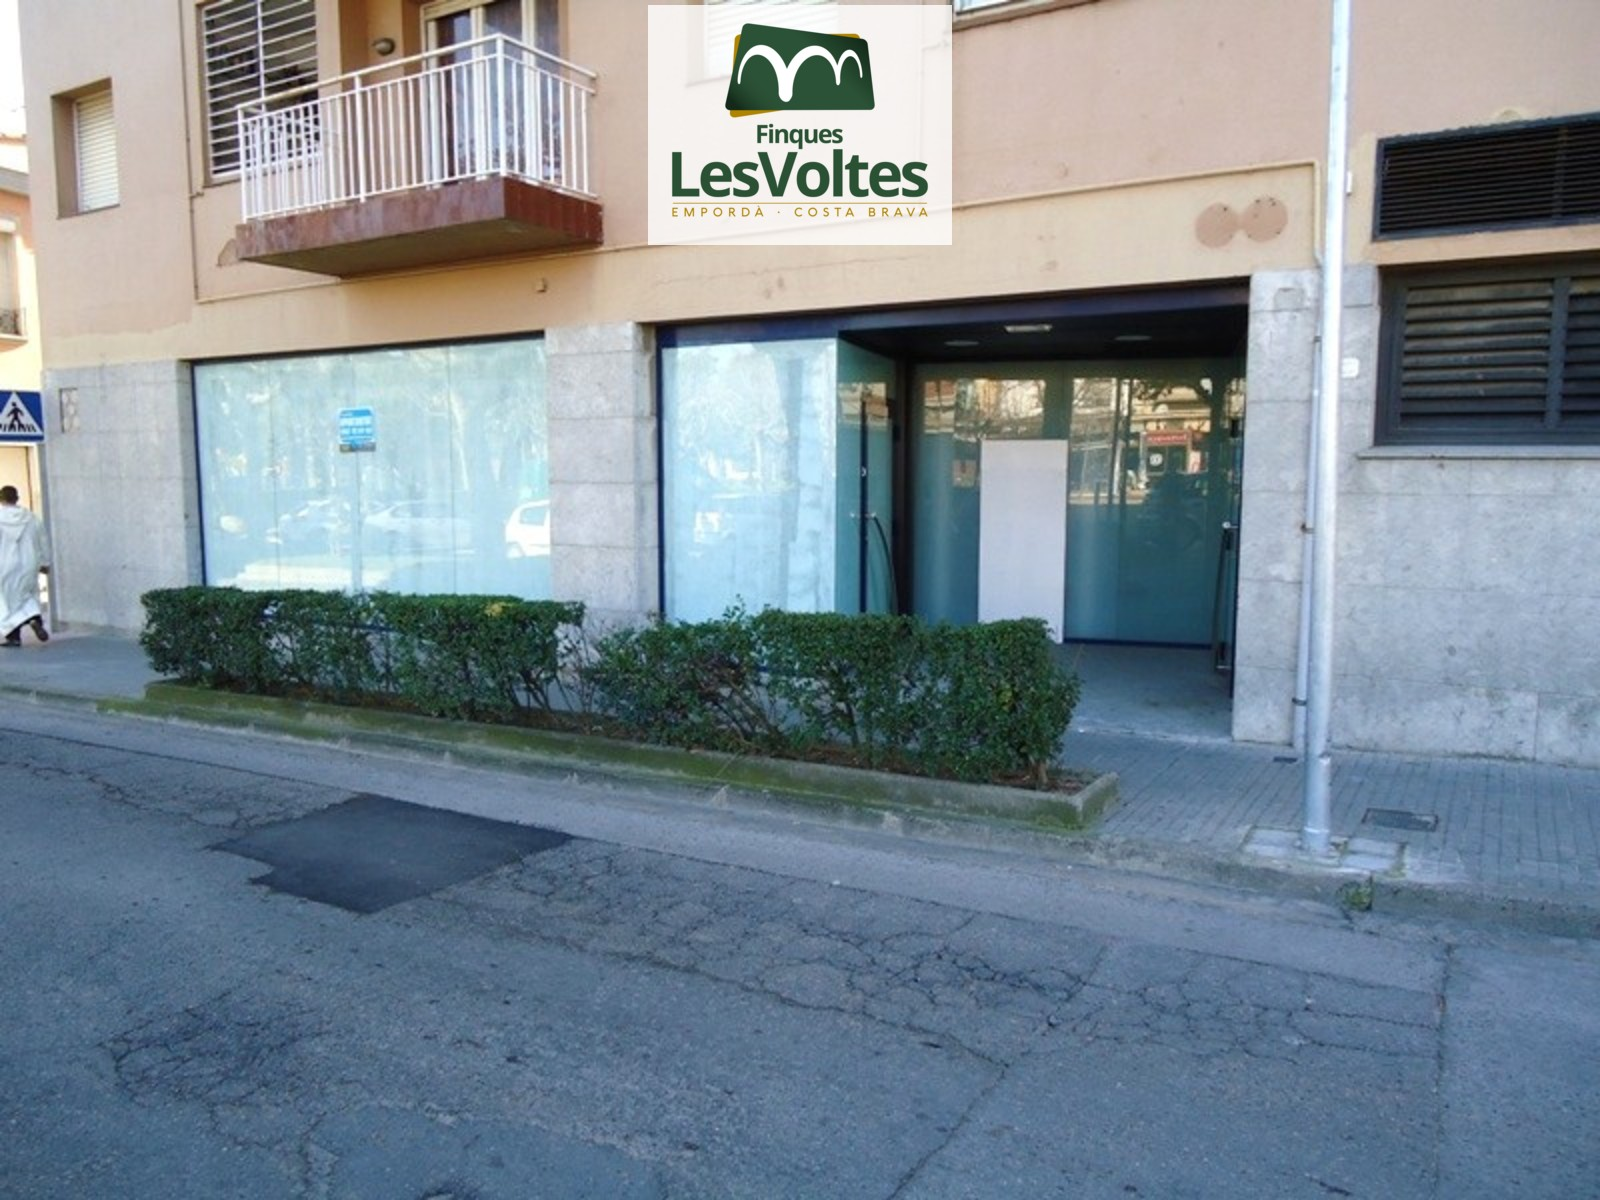 Local comercial 268m2 en venda al centre de Palafrugell. Preu negociable.